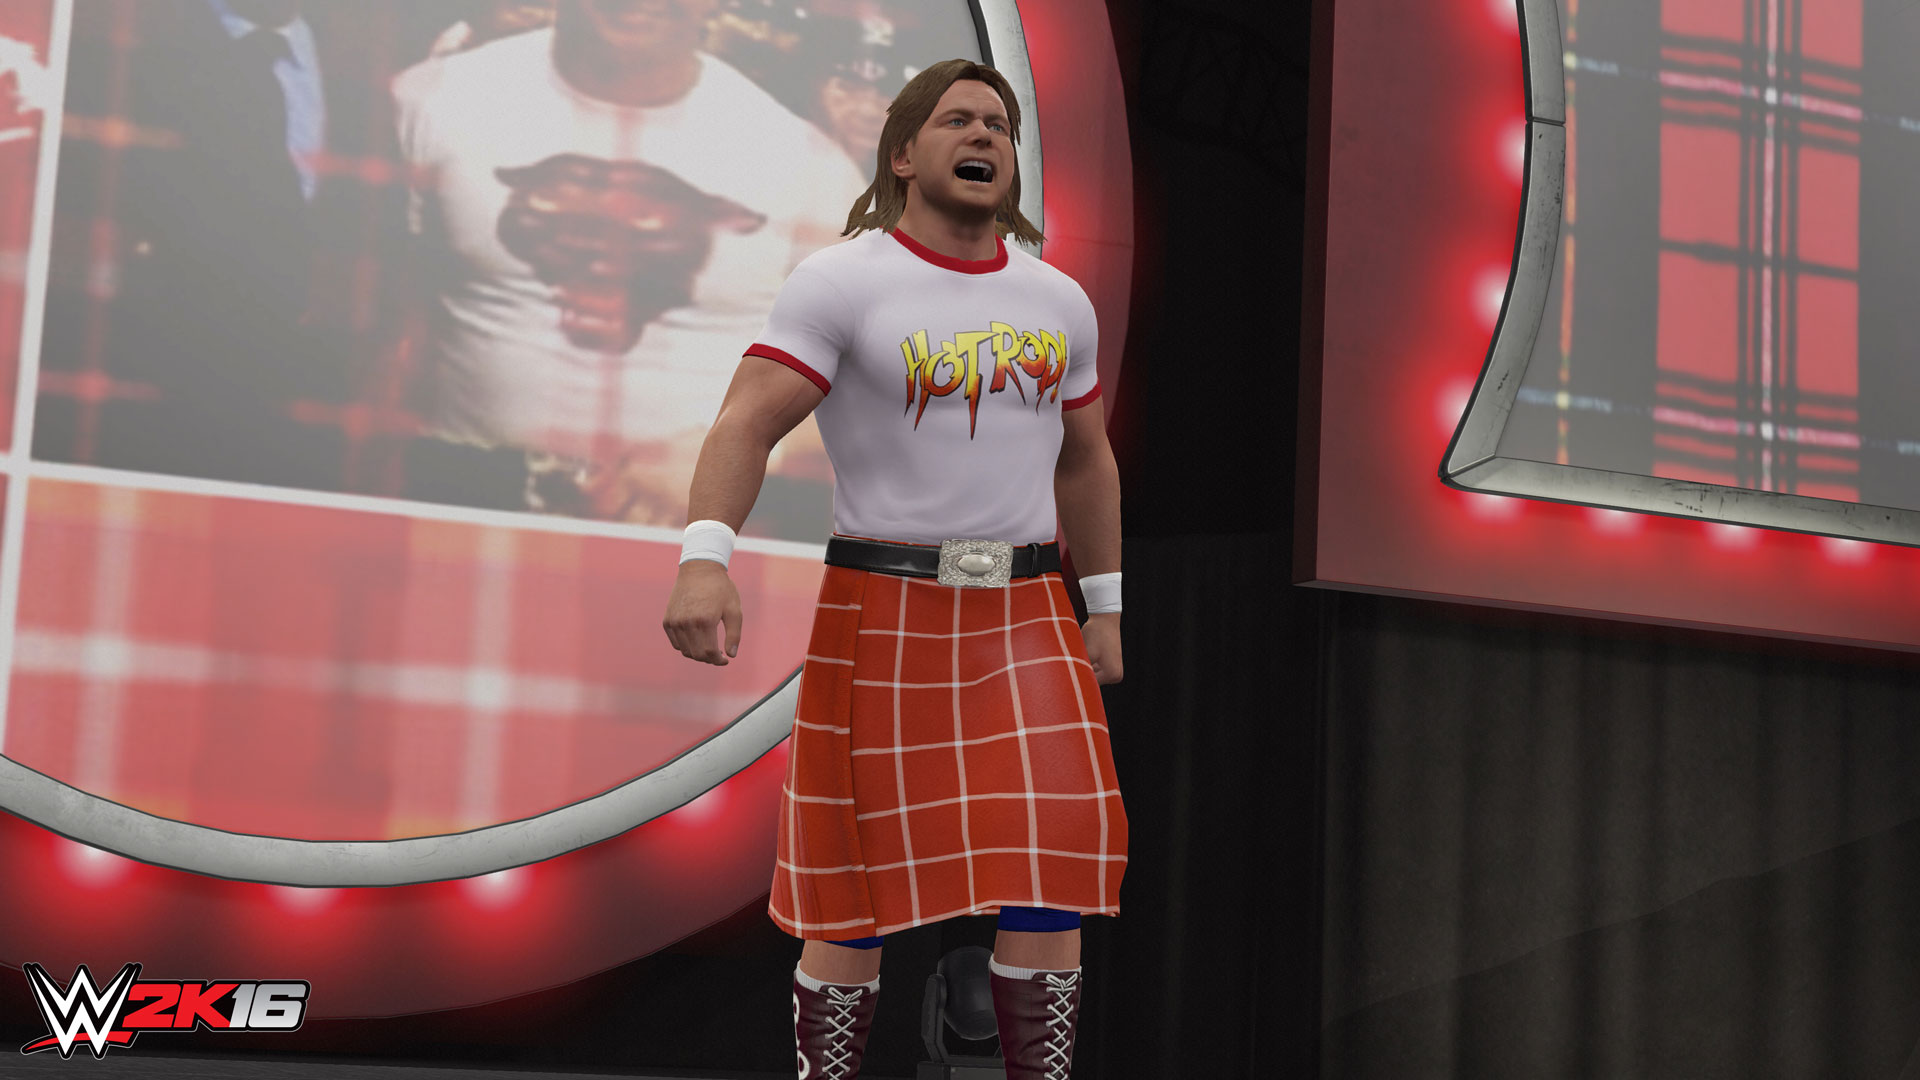 Grapple, Body Slam And More on PC As WWE 2K16 Drops On Steam Today